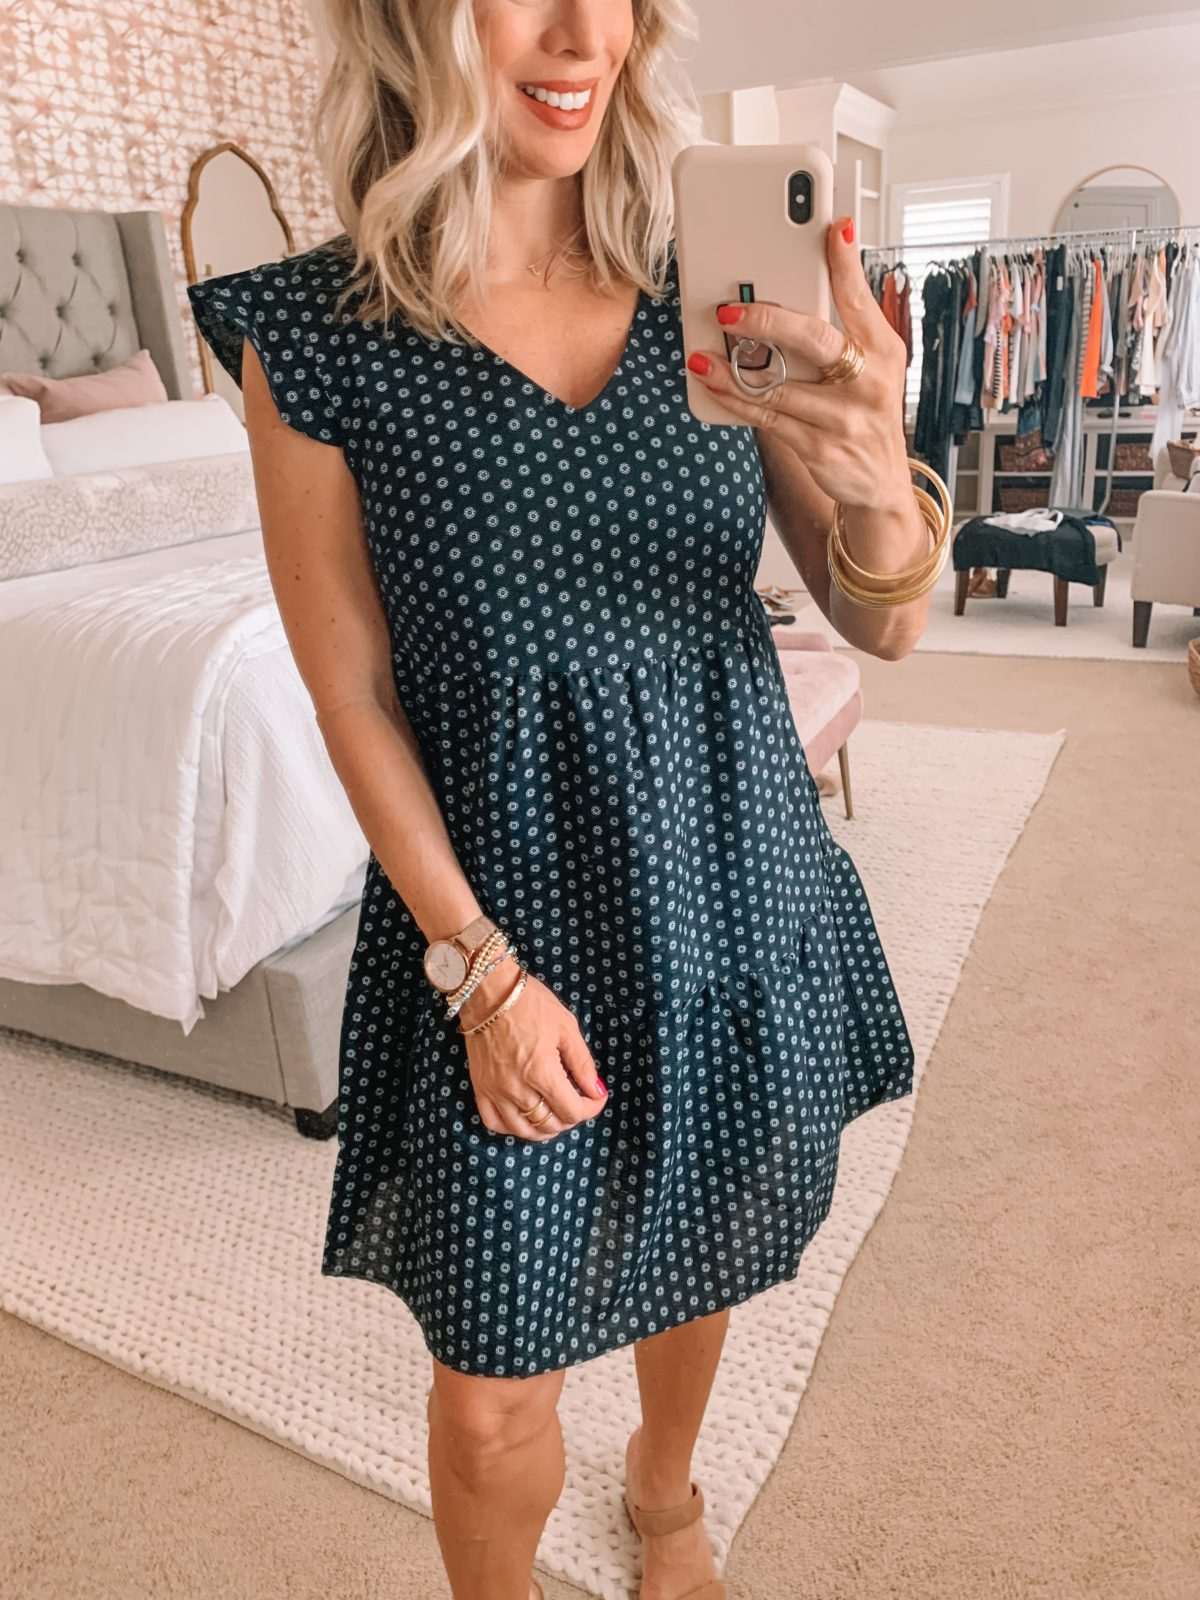 Amazon Fashion Finds, Ruffle Sleeve Dot Print Dress, Sandals